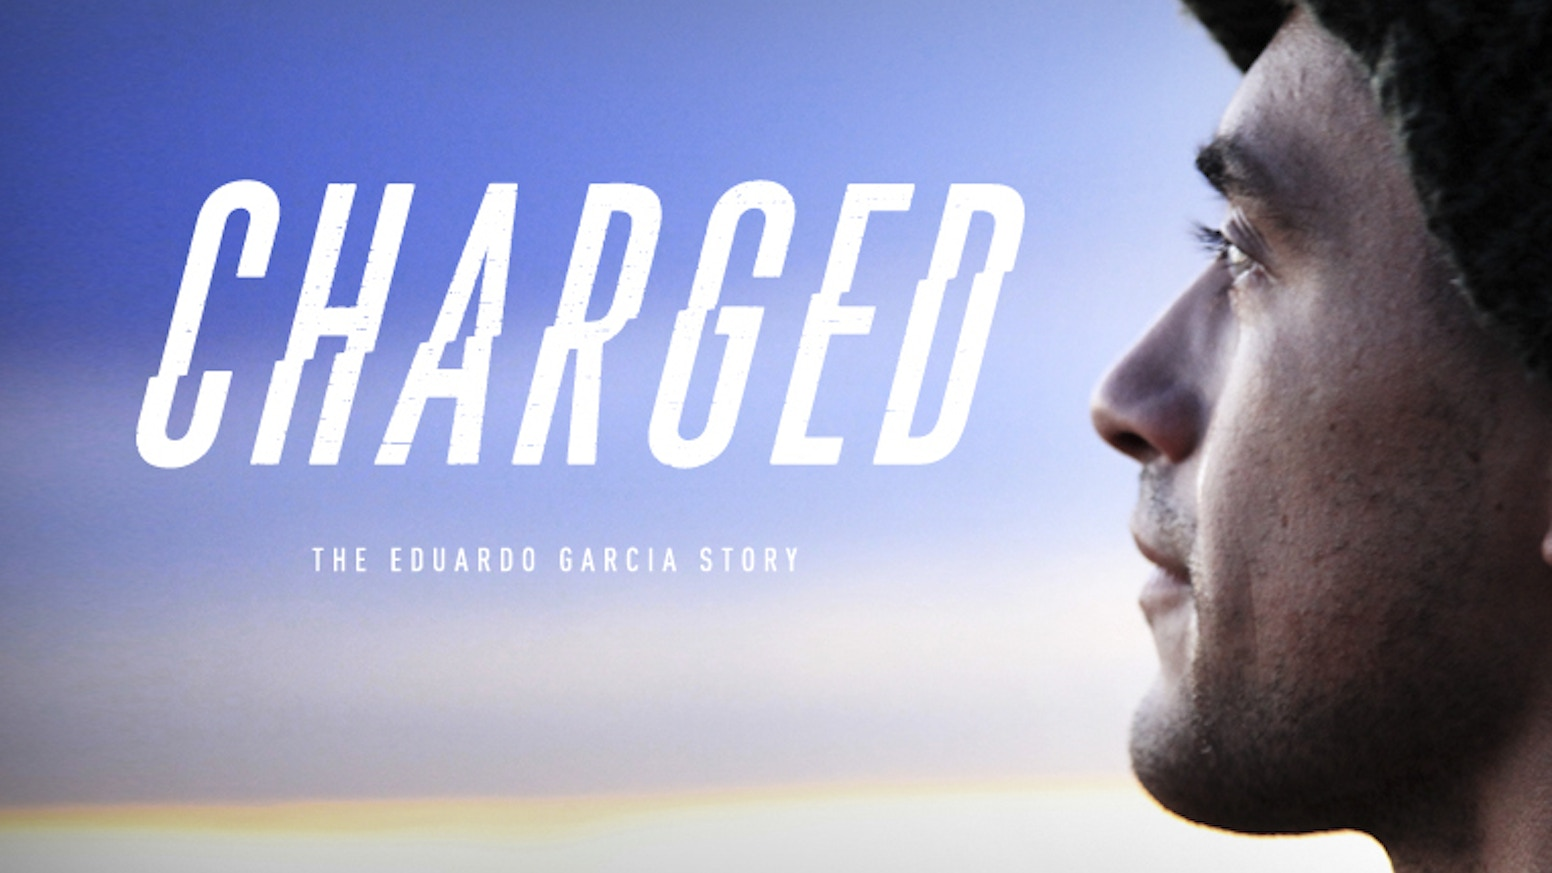 Charged with 2400V, Eduardo lost an arm, ribs, muscle mass, and nearly his life, but more important than what he lost is what he found.